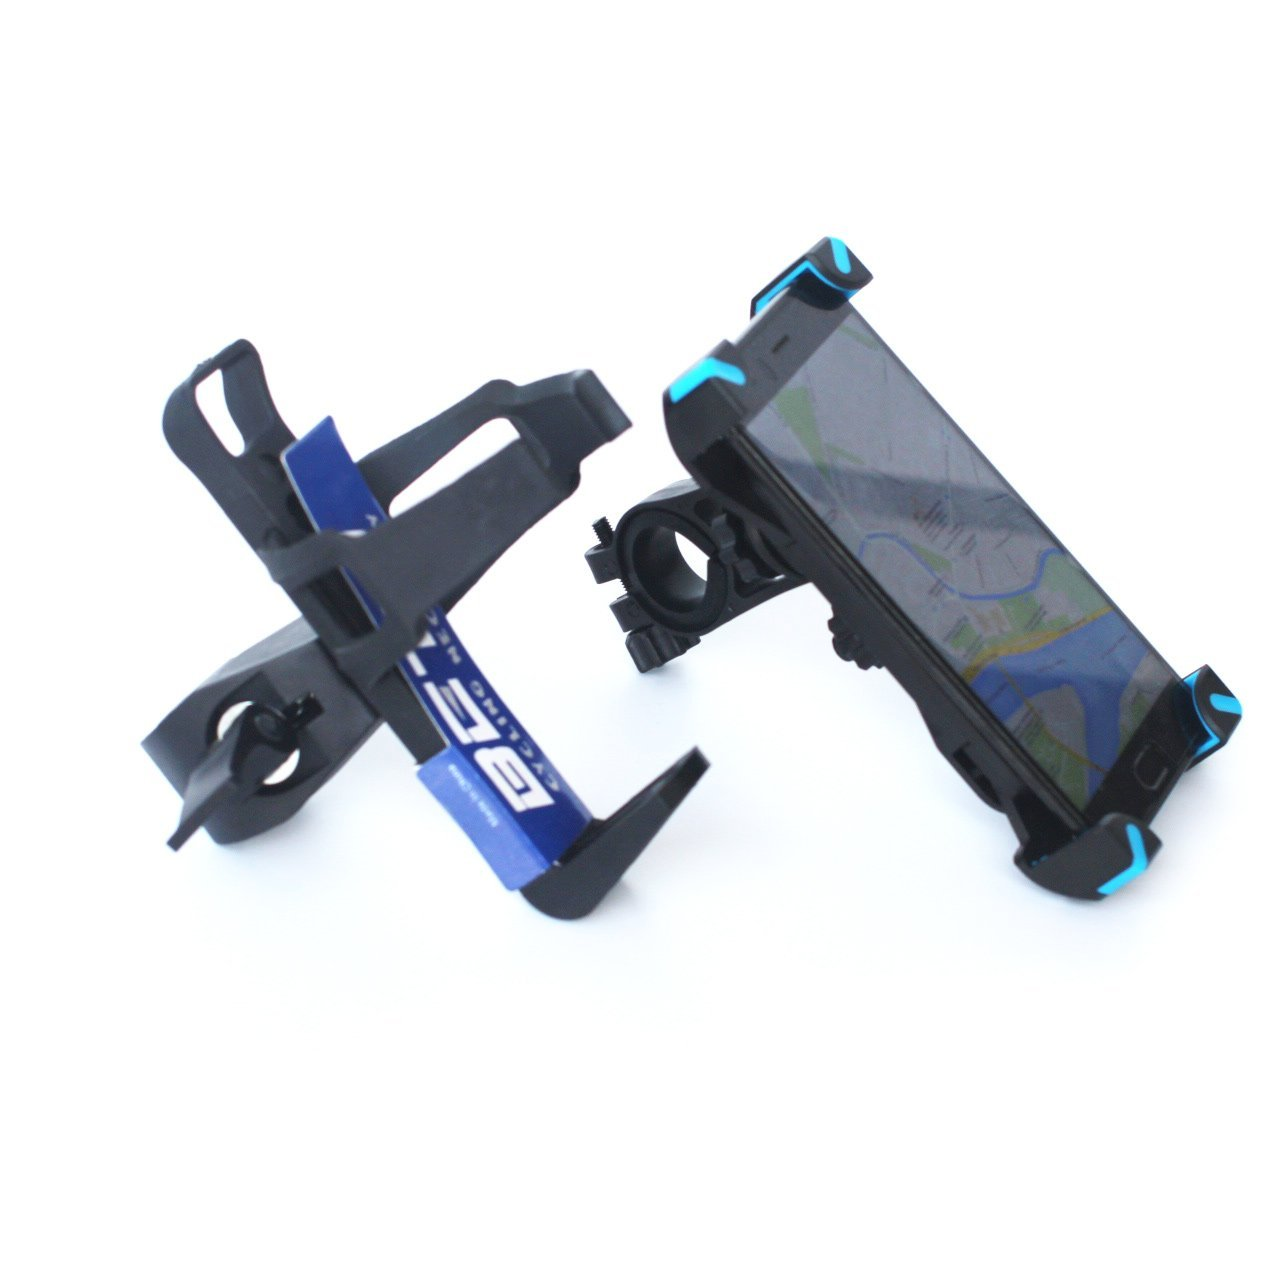 Bicycle Mobile Phone Holder Water Bottle Holder, Multi-Function Bracket Clip, Bicycle Accessories, Handlebar Holder, 2 Piece Set, Suitable for 3.5~7 Inch Mobile Phone, Motorcycle/Mountain Bike